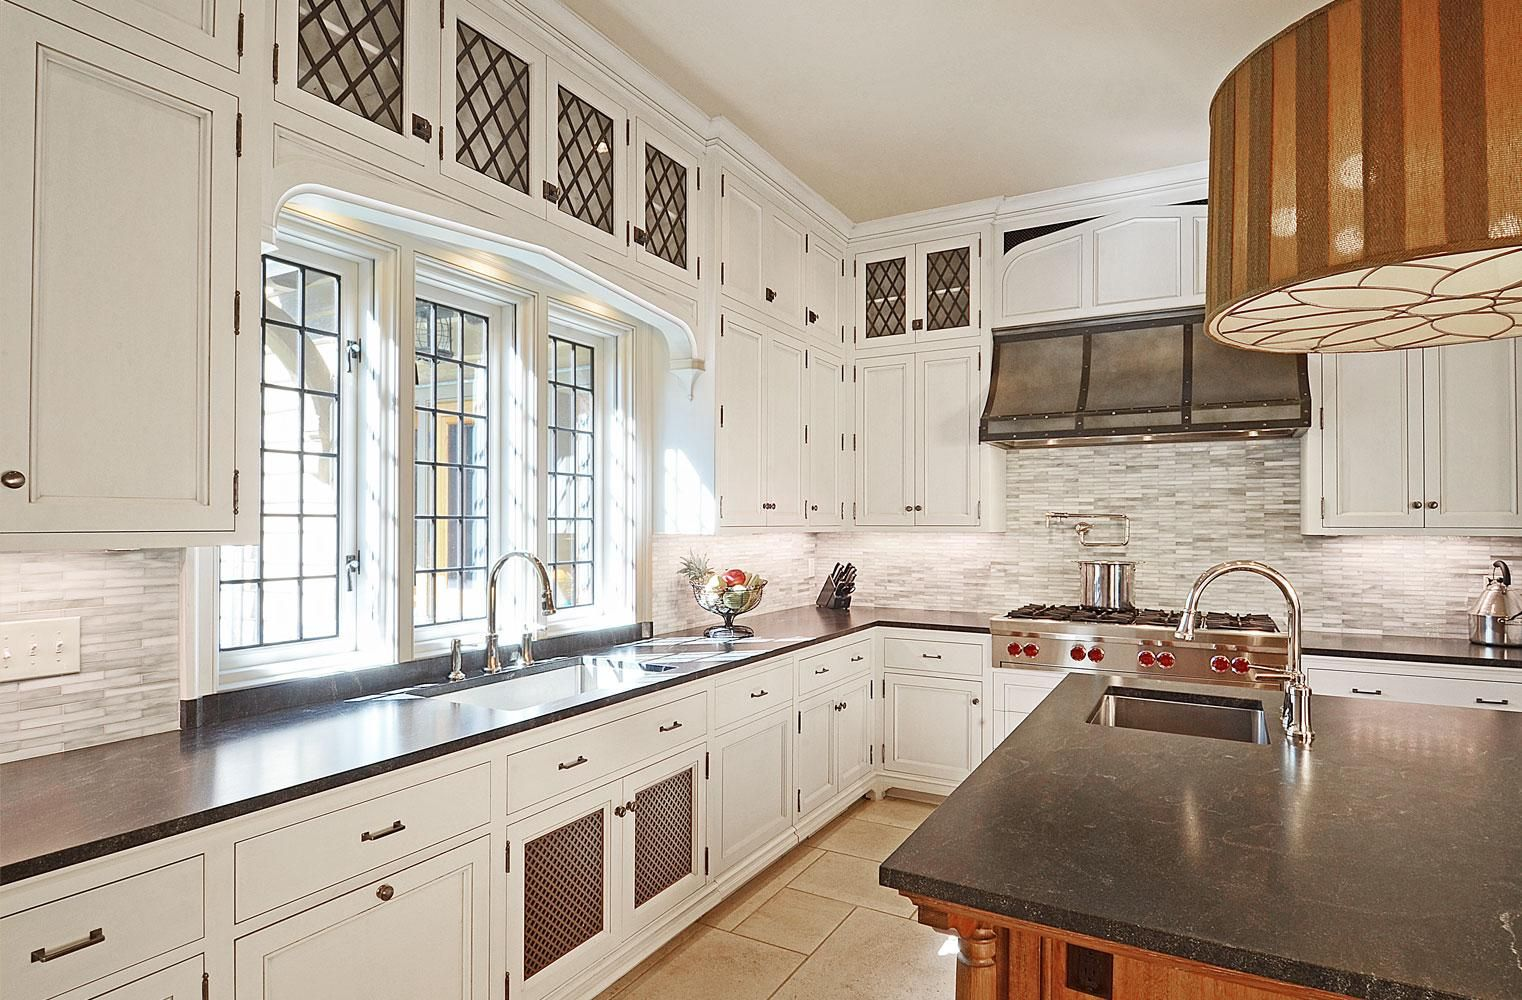 Best Kitchen Gallery: Douglas Vanderhorn Architects Mid Country Tudor Kitchen of Tudor Kitchen Cabinets on cal-ite.com